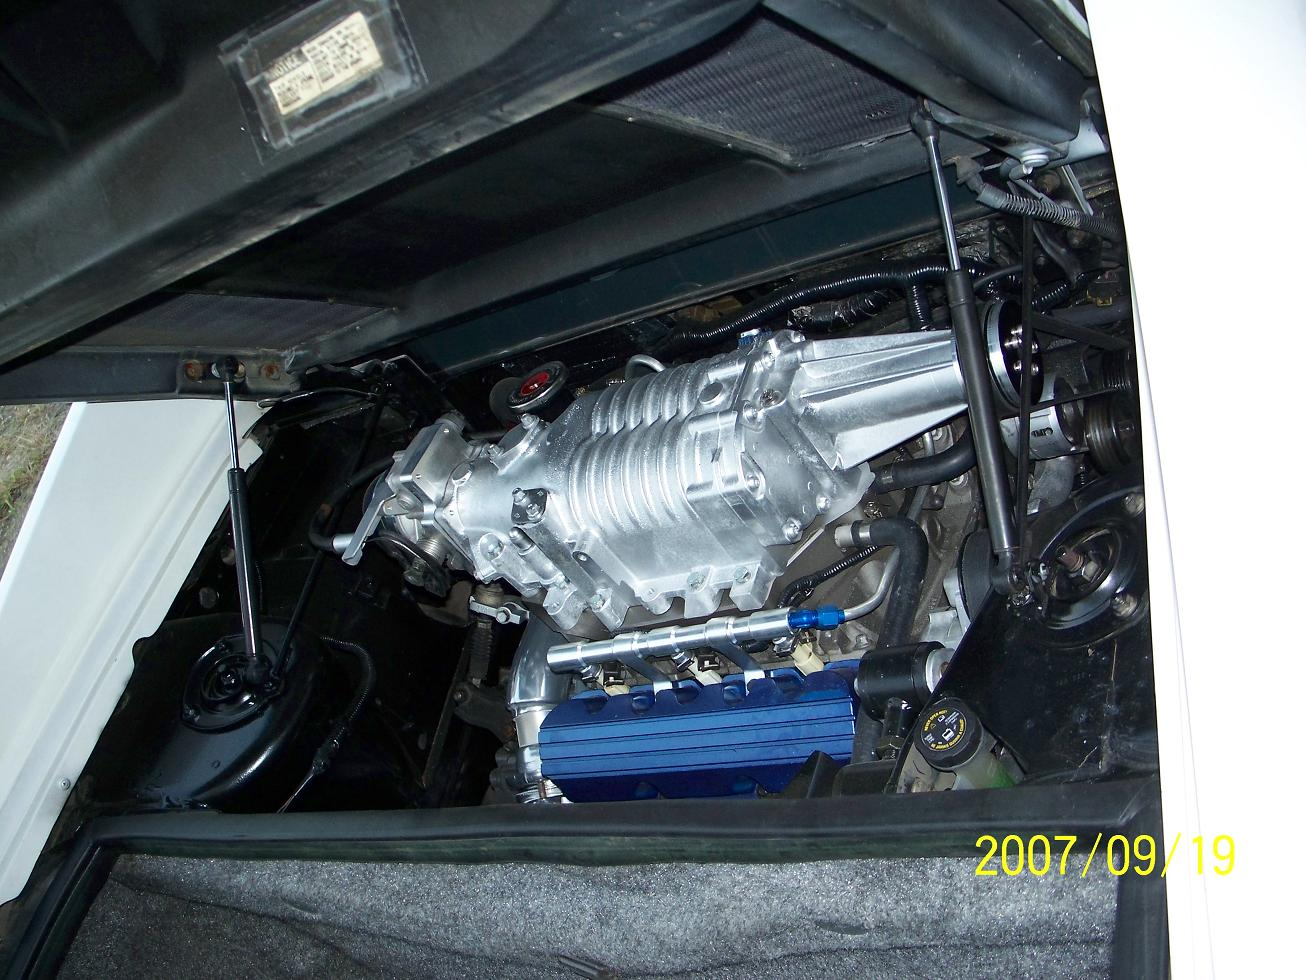 About Us Pontiac Fiero Fuel Filter Location 200 Miles On The Install 9 19 07